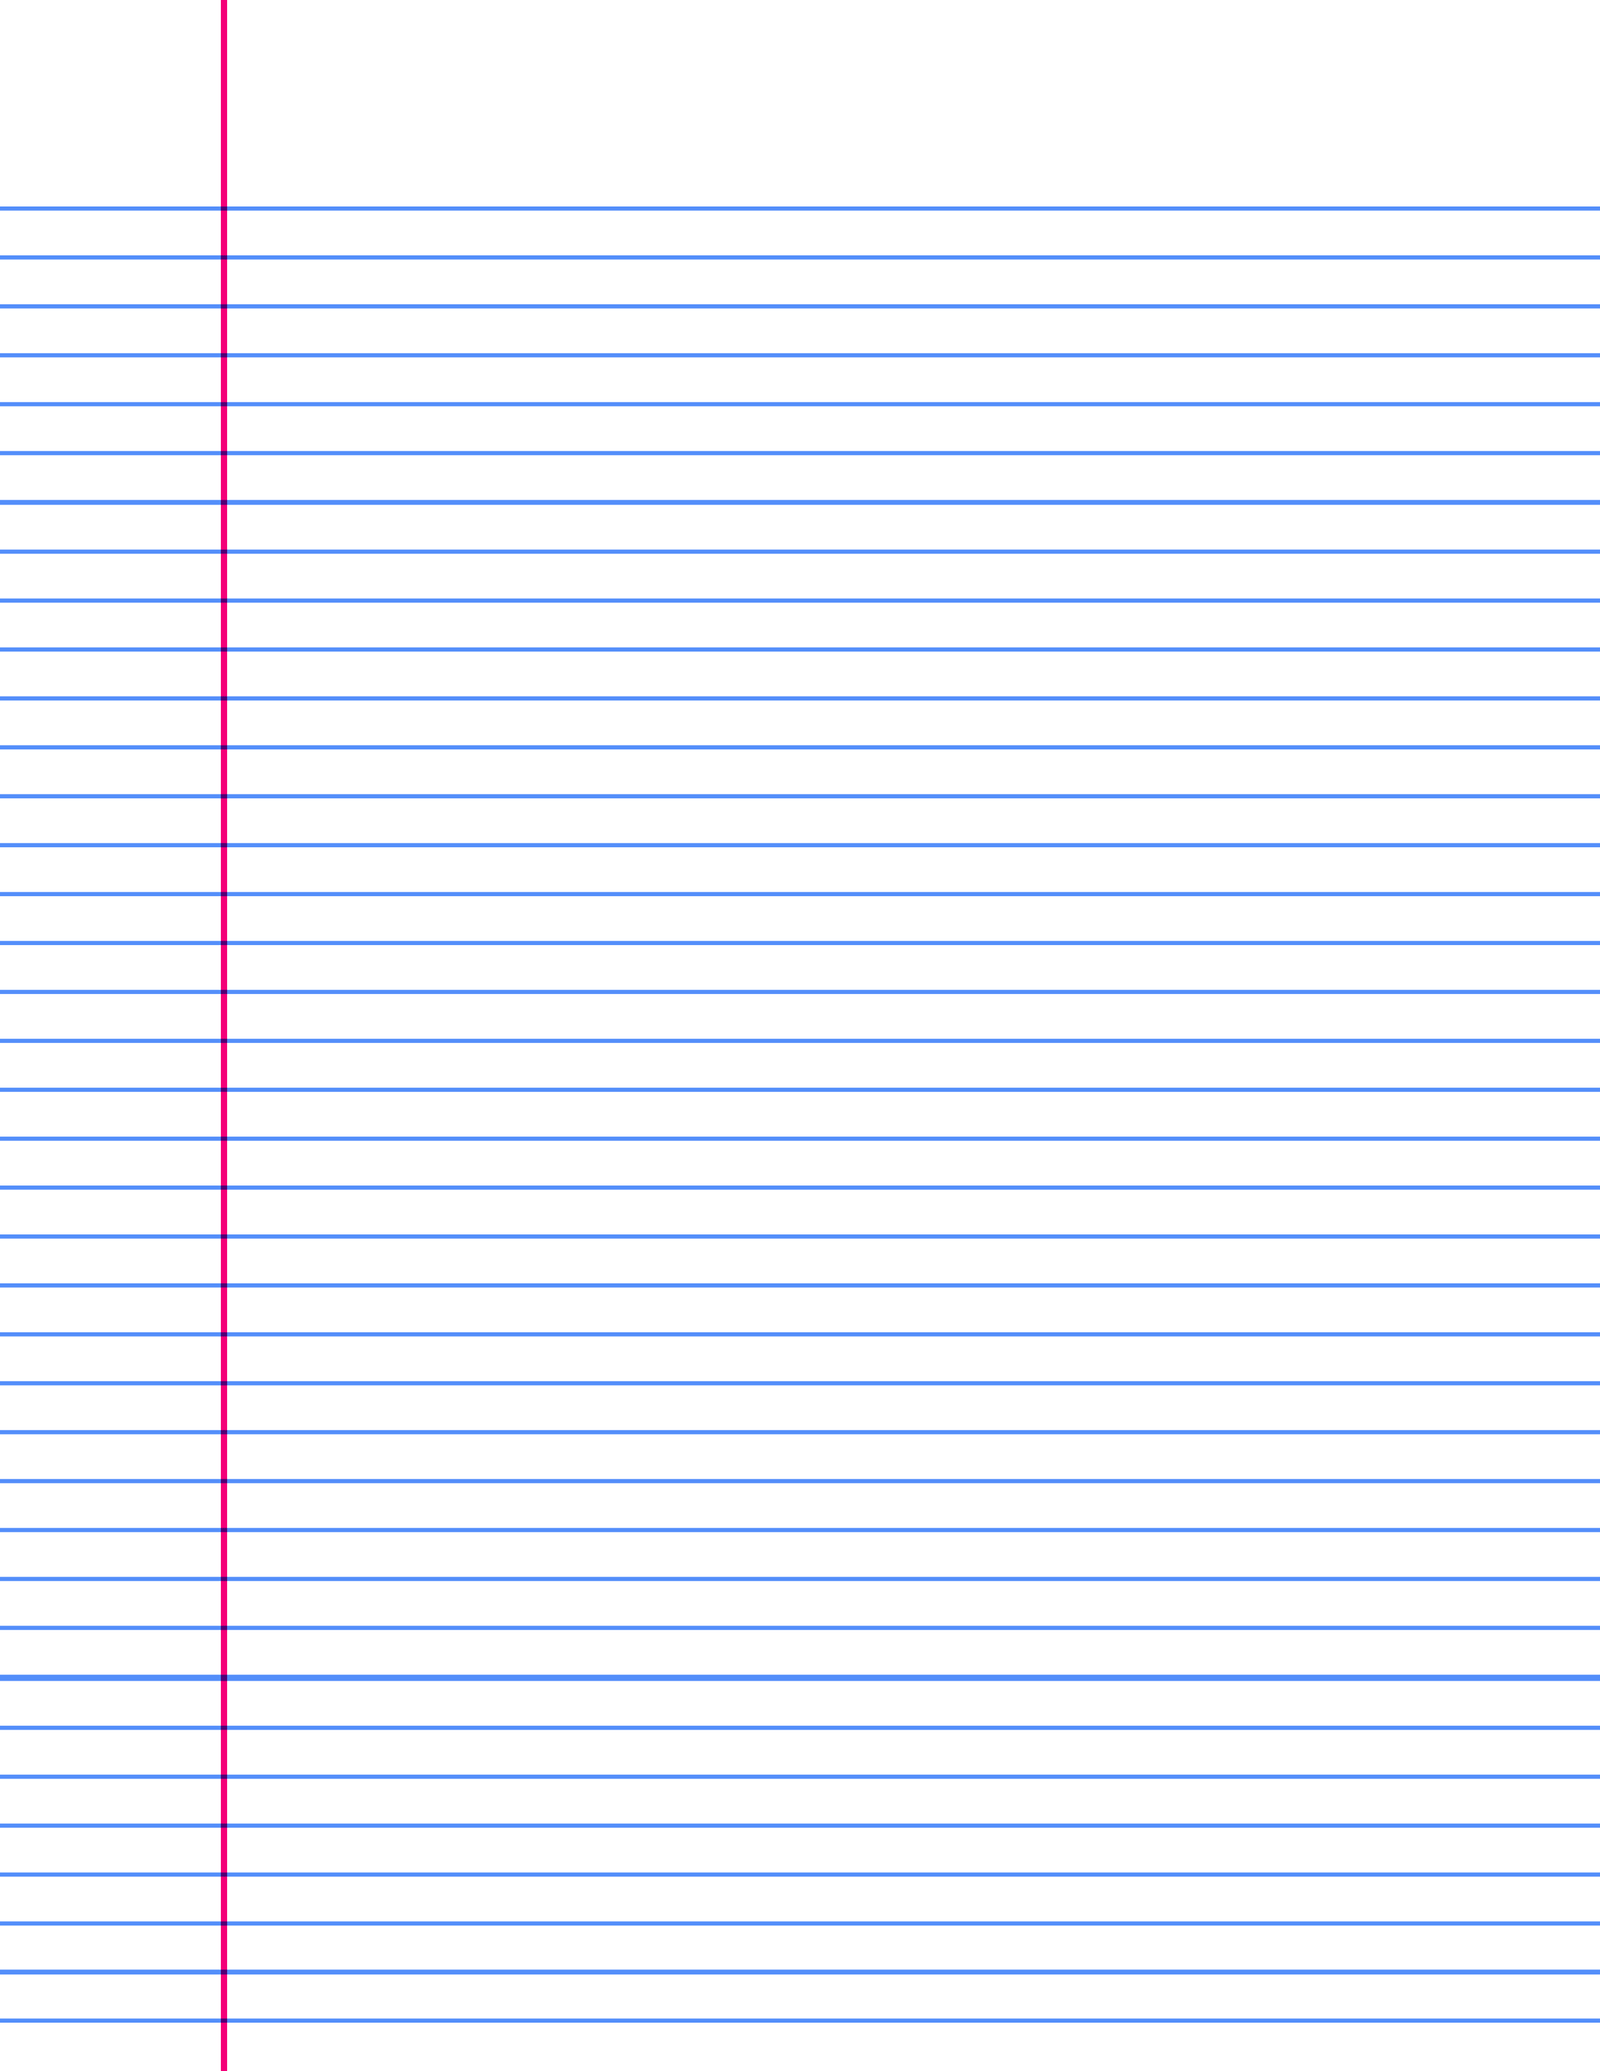 Black Lines: With No Border Or Any Margin This Template Consist Of Never  Ending Plain Parallel Black Lines Which Can Either Be Used To Jot Down  Points ...  Print College Ruled Paper